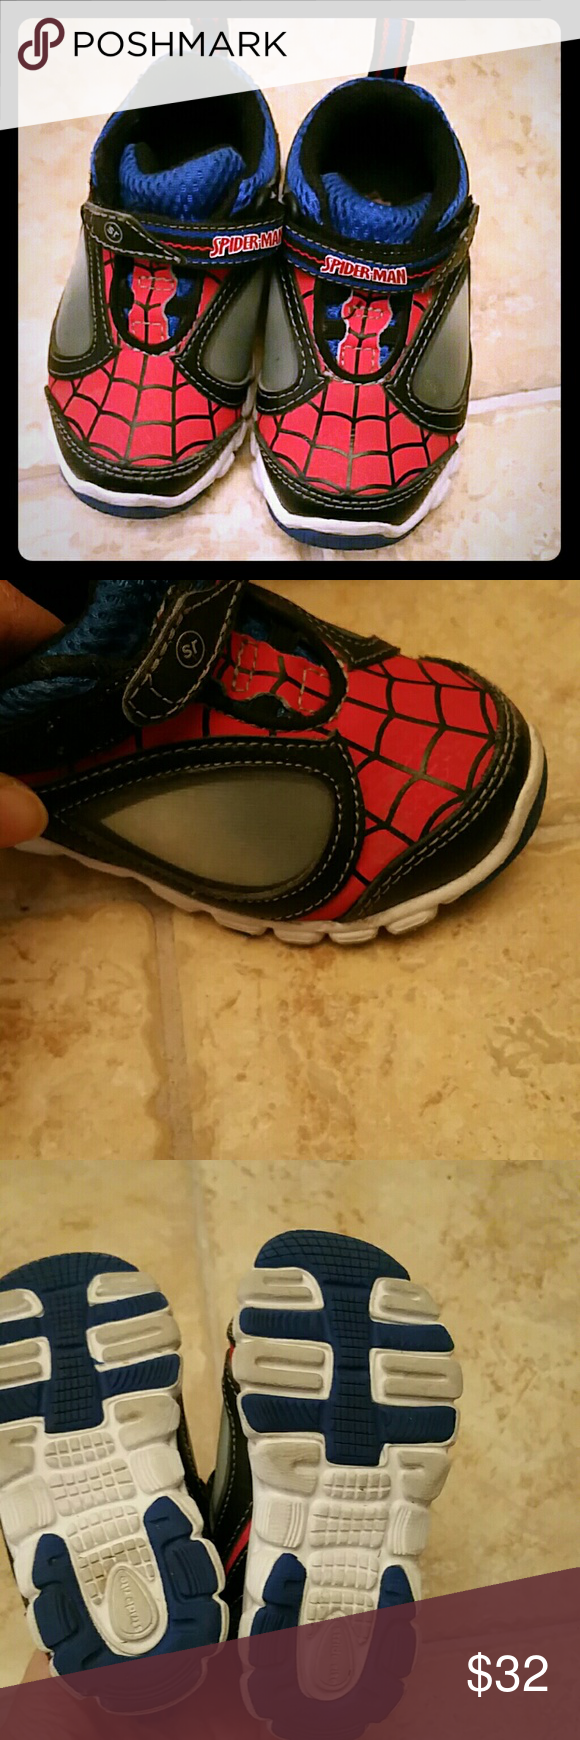 e399ef8cbaa Stride rite light up spiderman sneakers Size 6. Worn 3 times before they  became too small for growing toddler feet. In excellent condition.